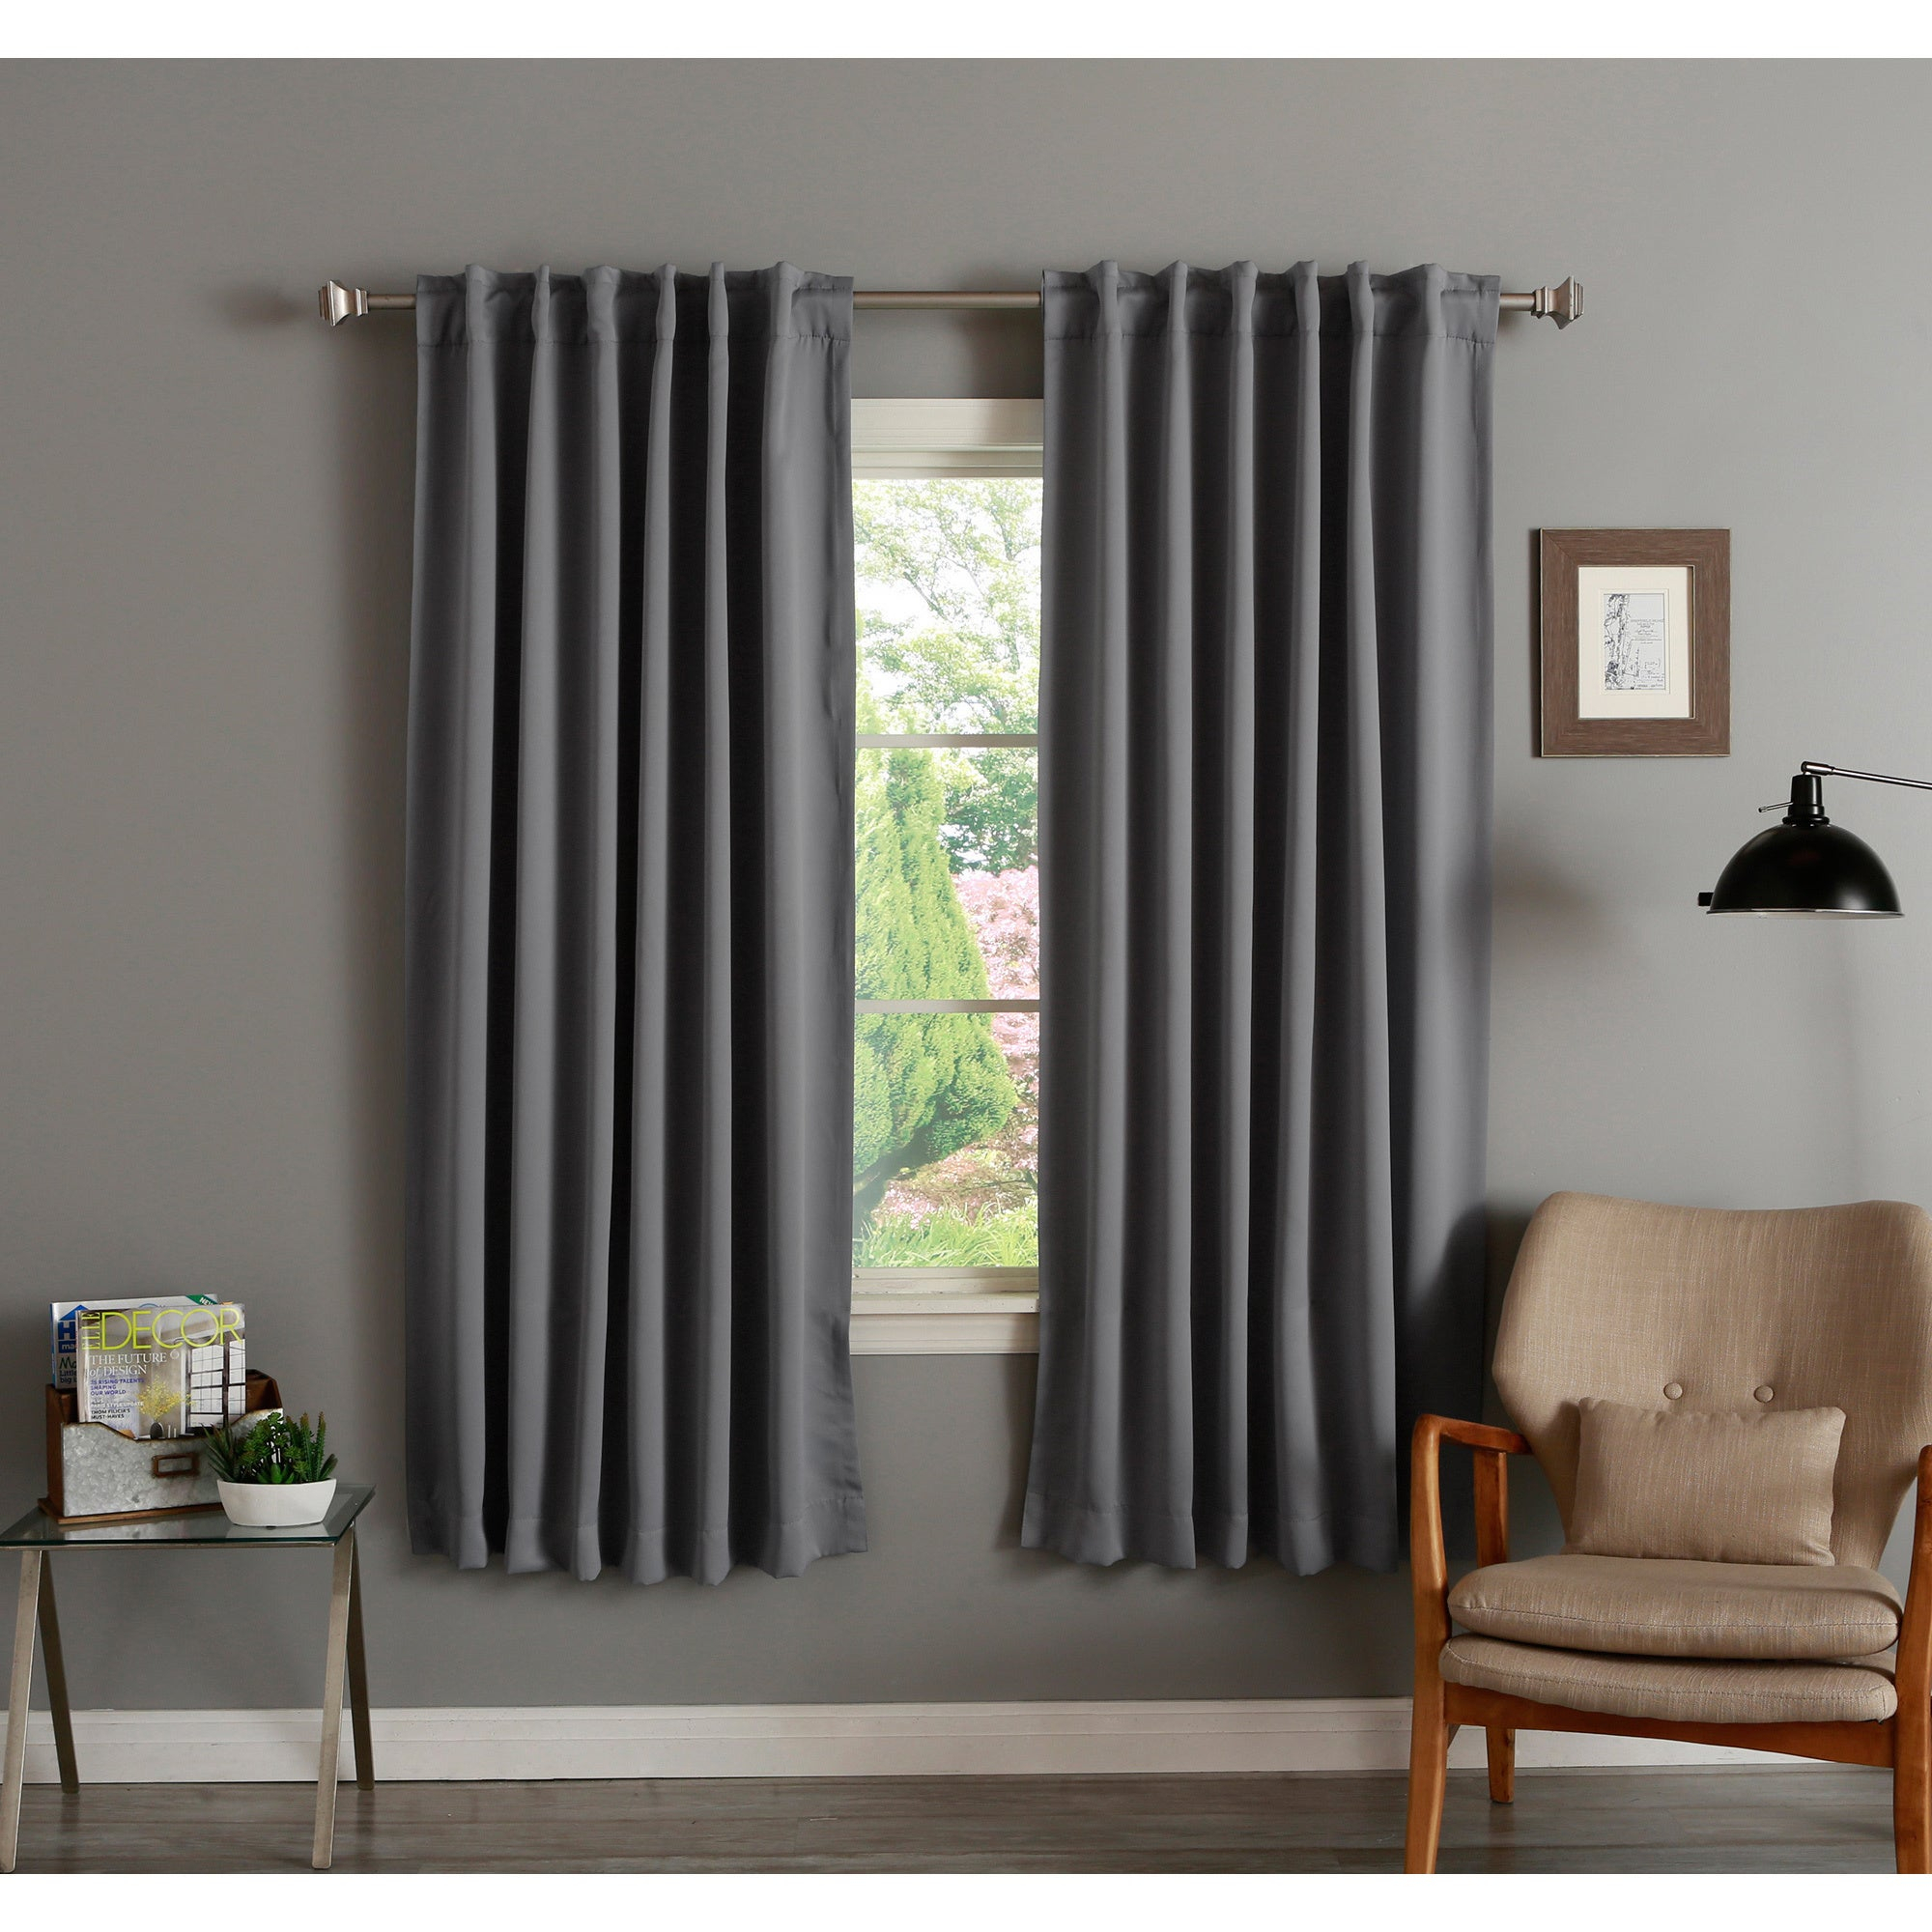 Aurora Home Insulated 72 Inch Thermal Blackout Curtain Panel Pair – 52 X 72 Throughout Thermal Insulated Blackout Curtain Pairs (View 6 of 30)